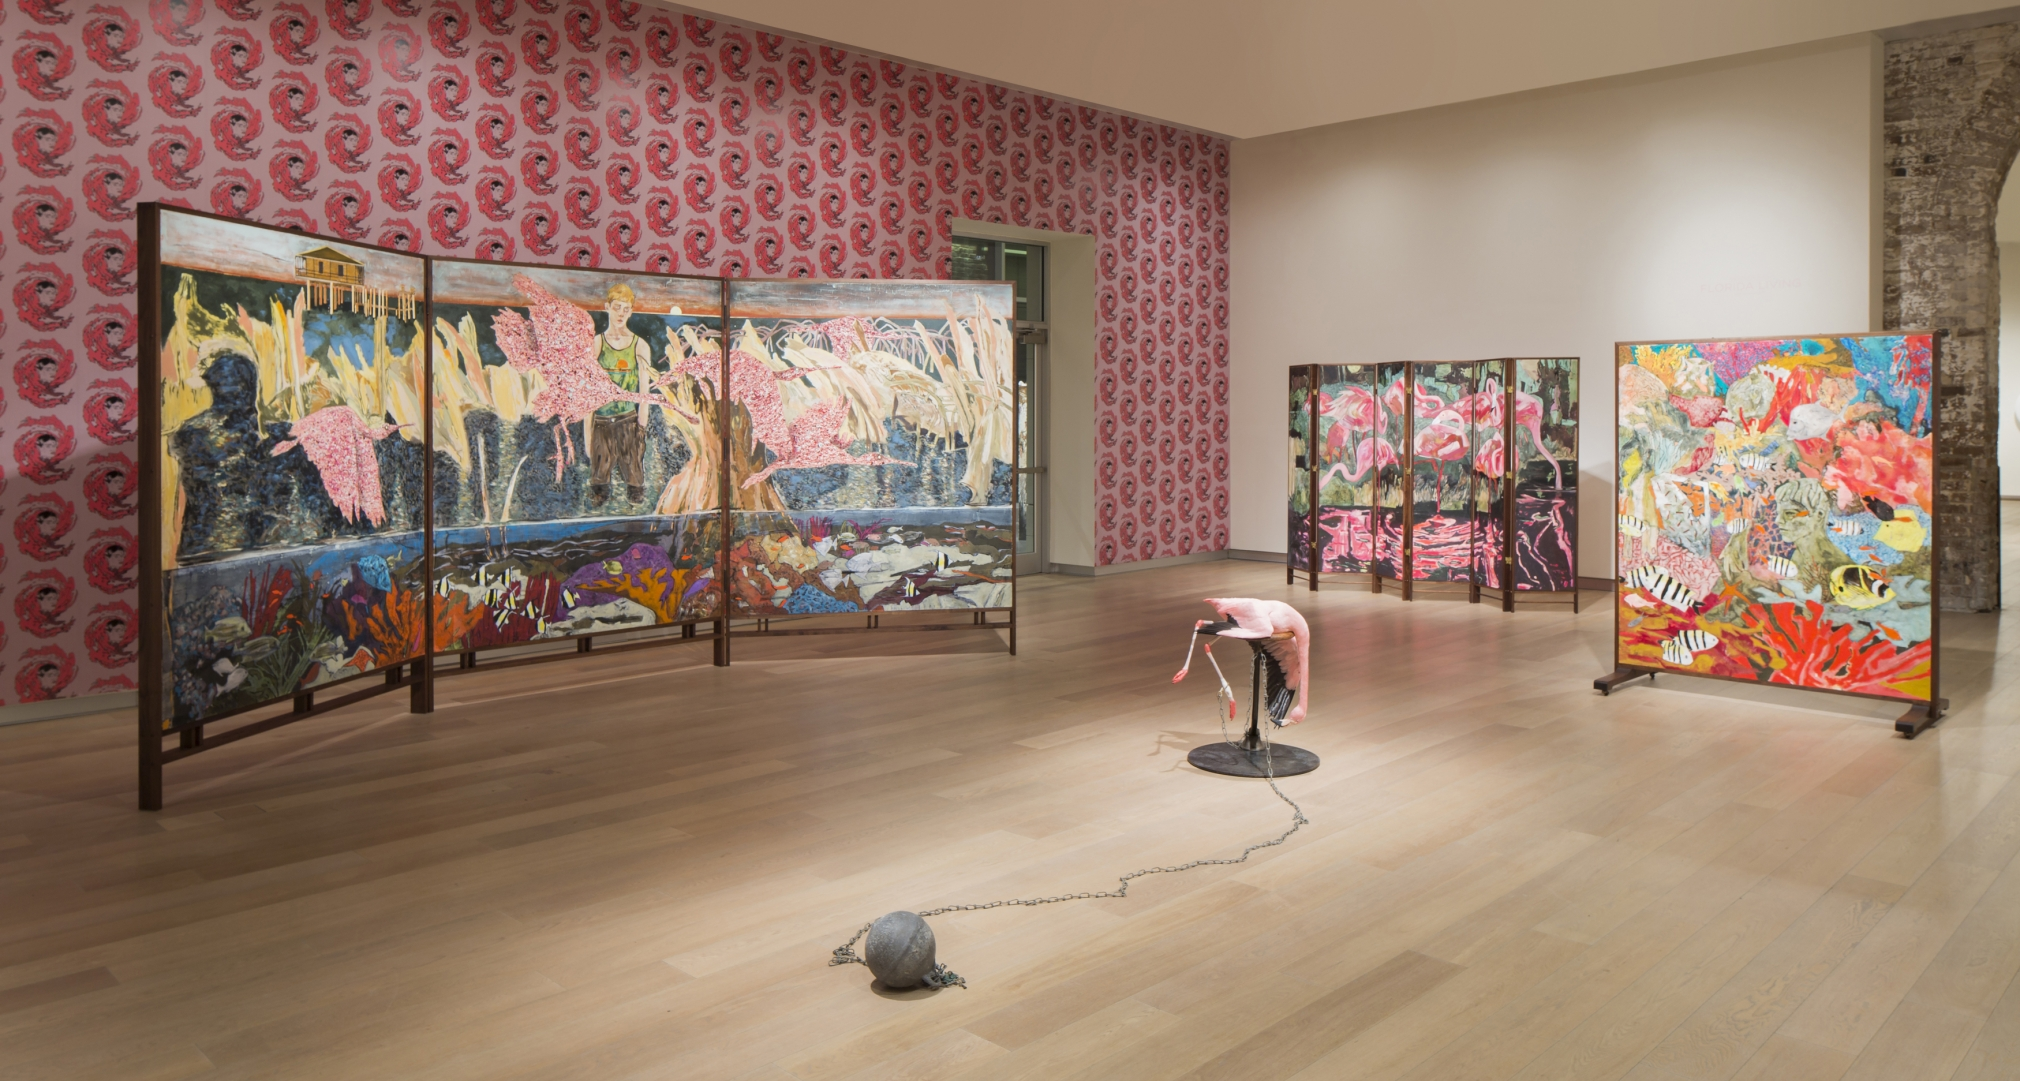 Hernan Bas, Florida Living, Installation view, SCAD Museum of Art, Savannah, GA, 2017